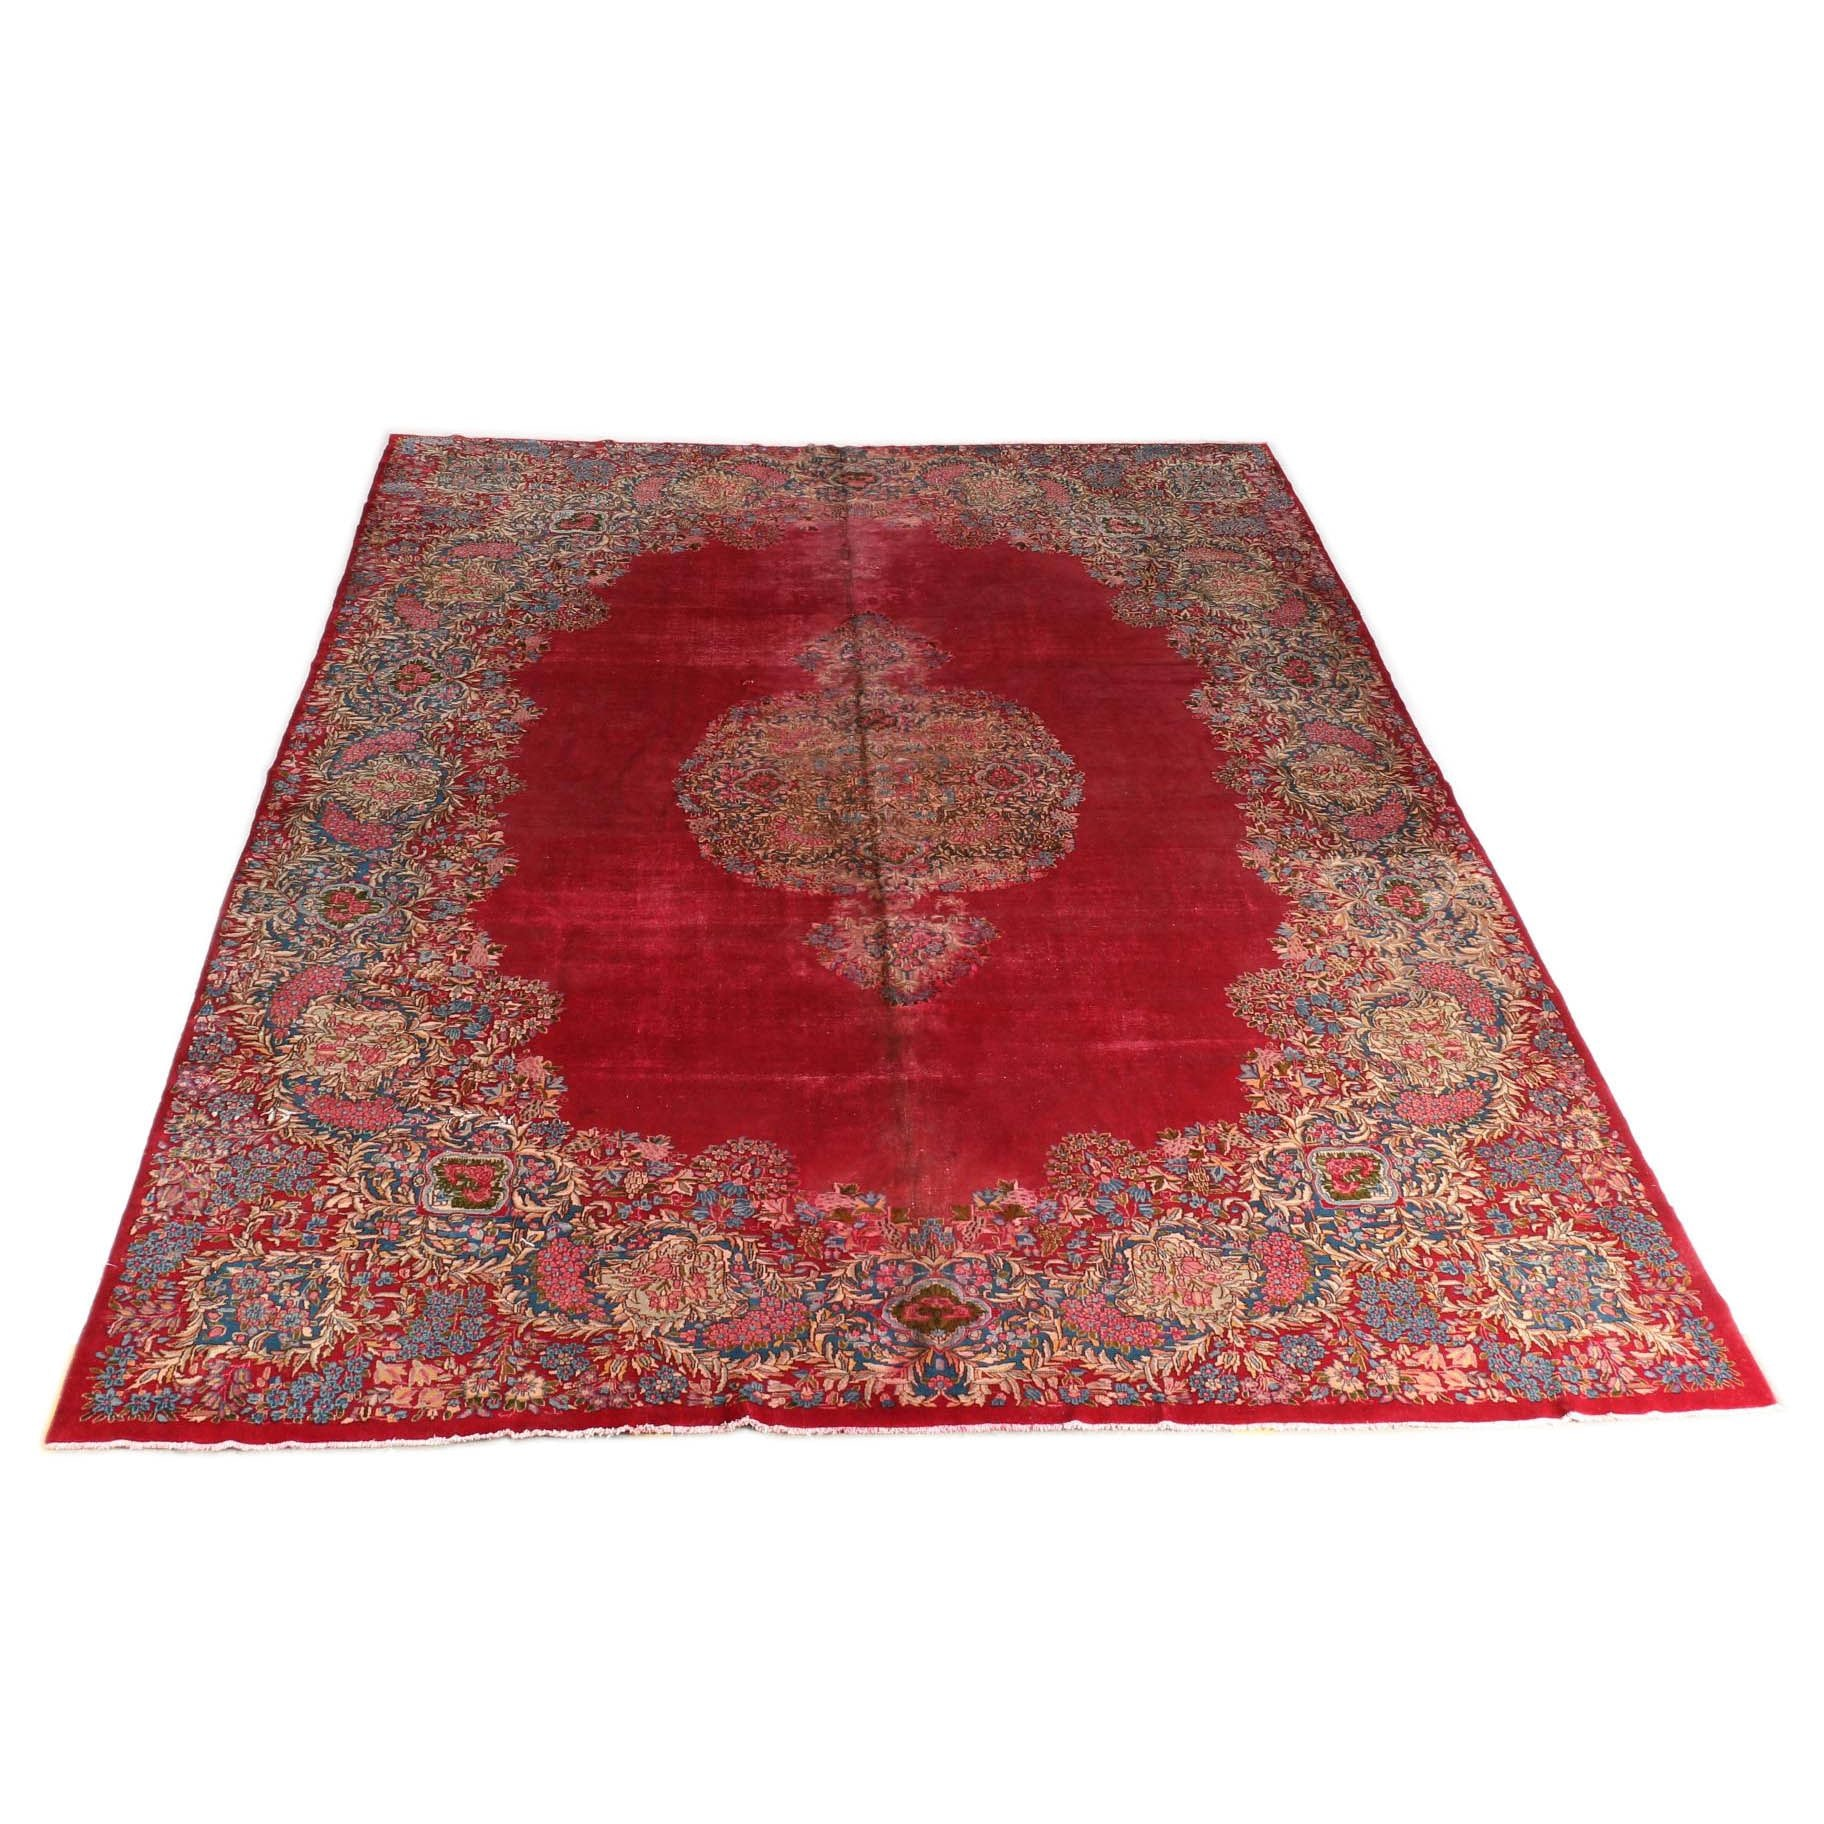 Very Large Hand-Knotted Persian Kerman Rug